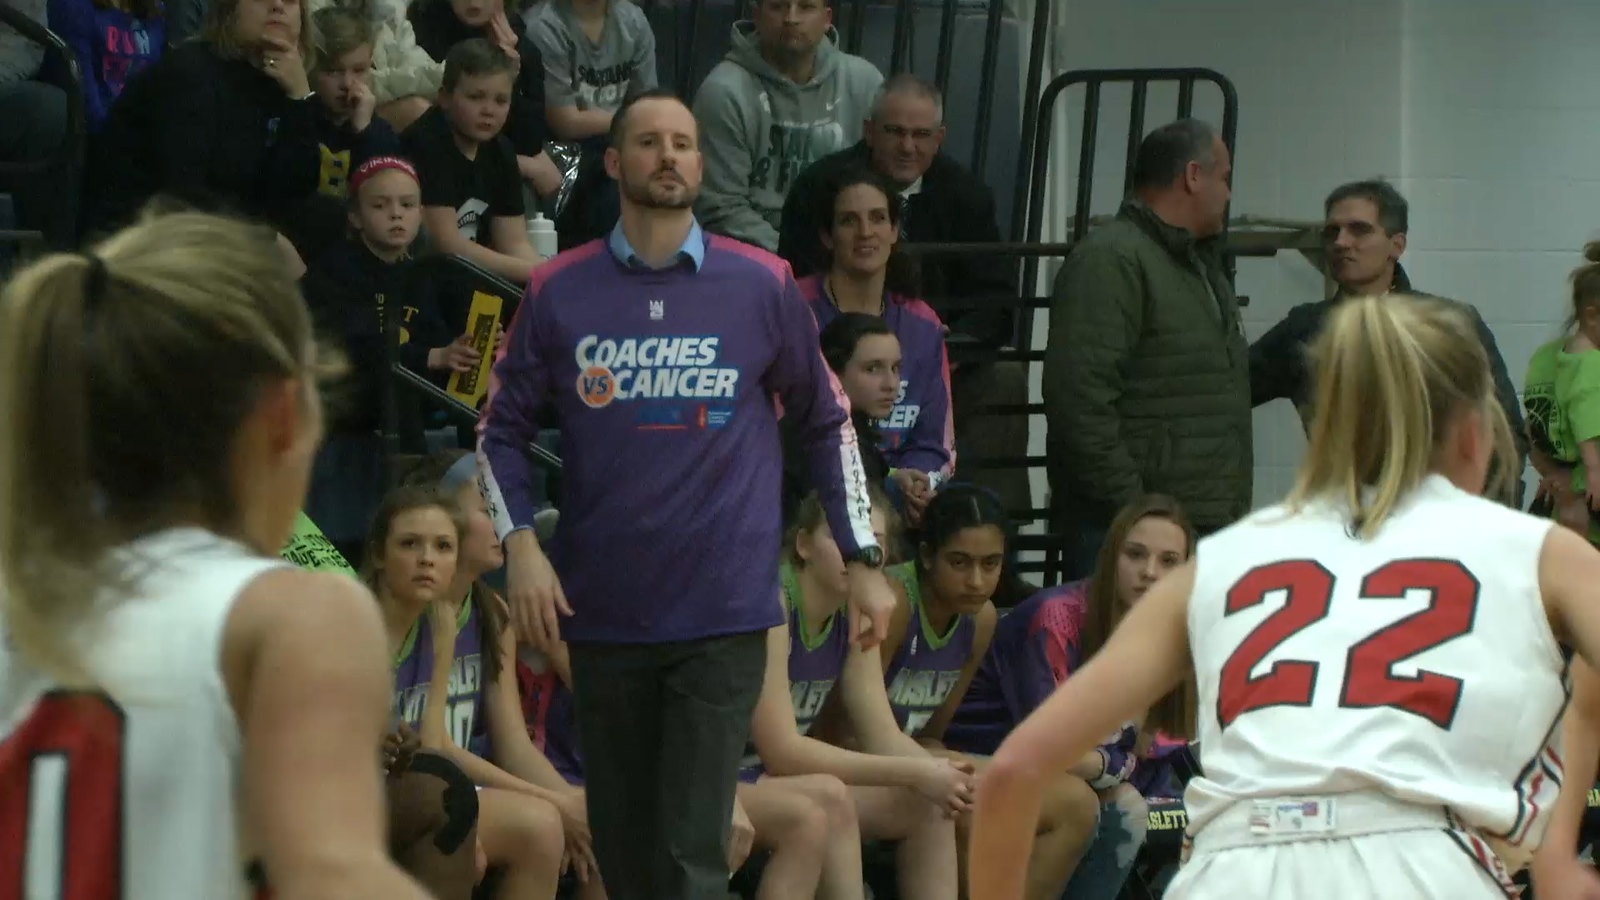 Haslett High School Hosts Coaches VS. Cancer During Basketball Against St. Johns